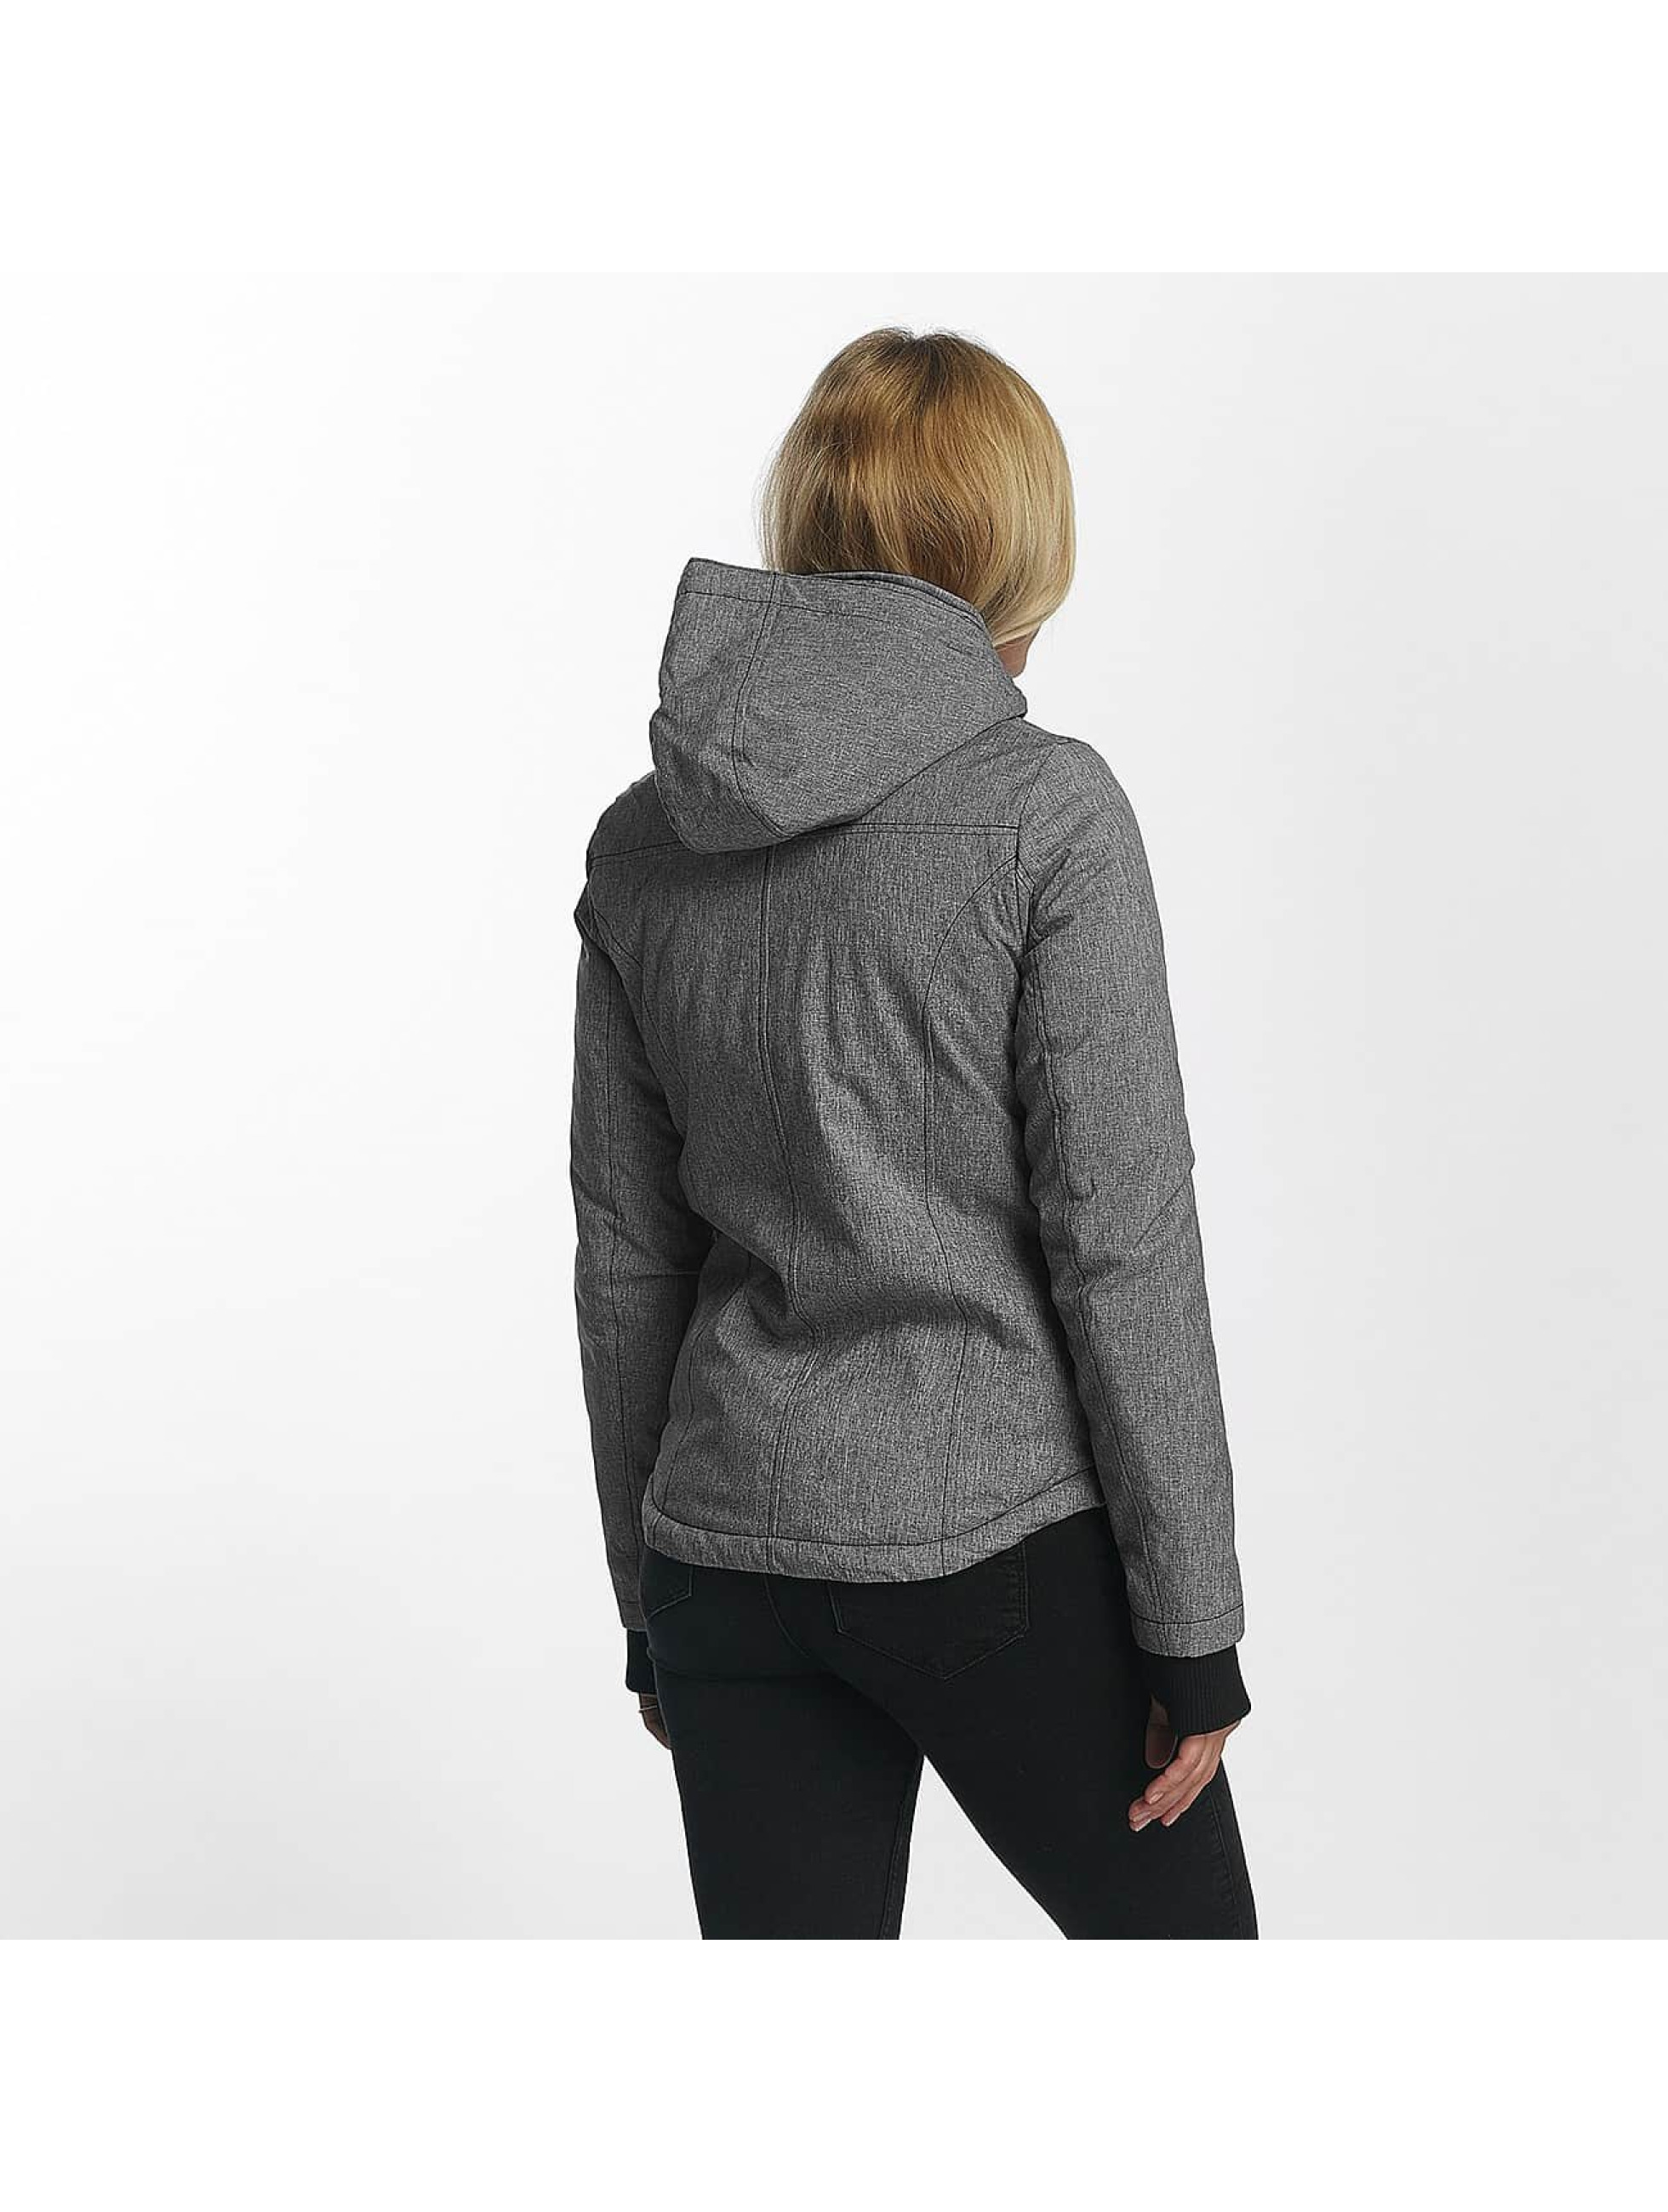 Sublevel Winter Jacket Jacket gray